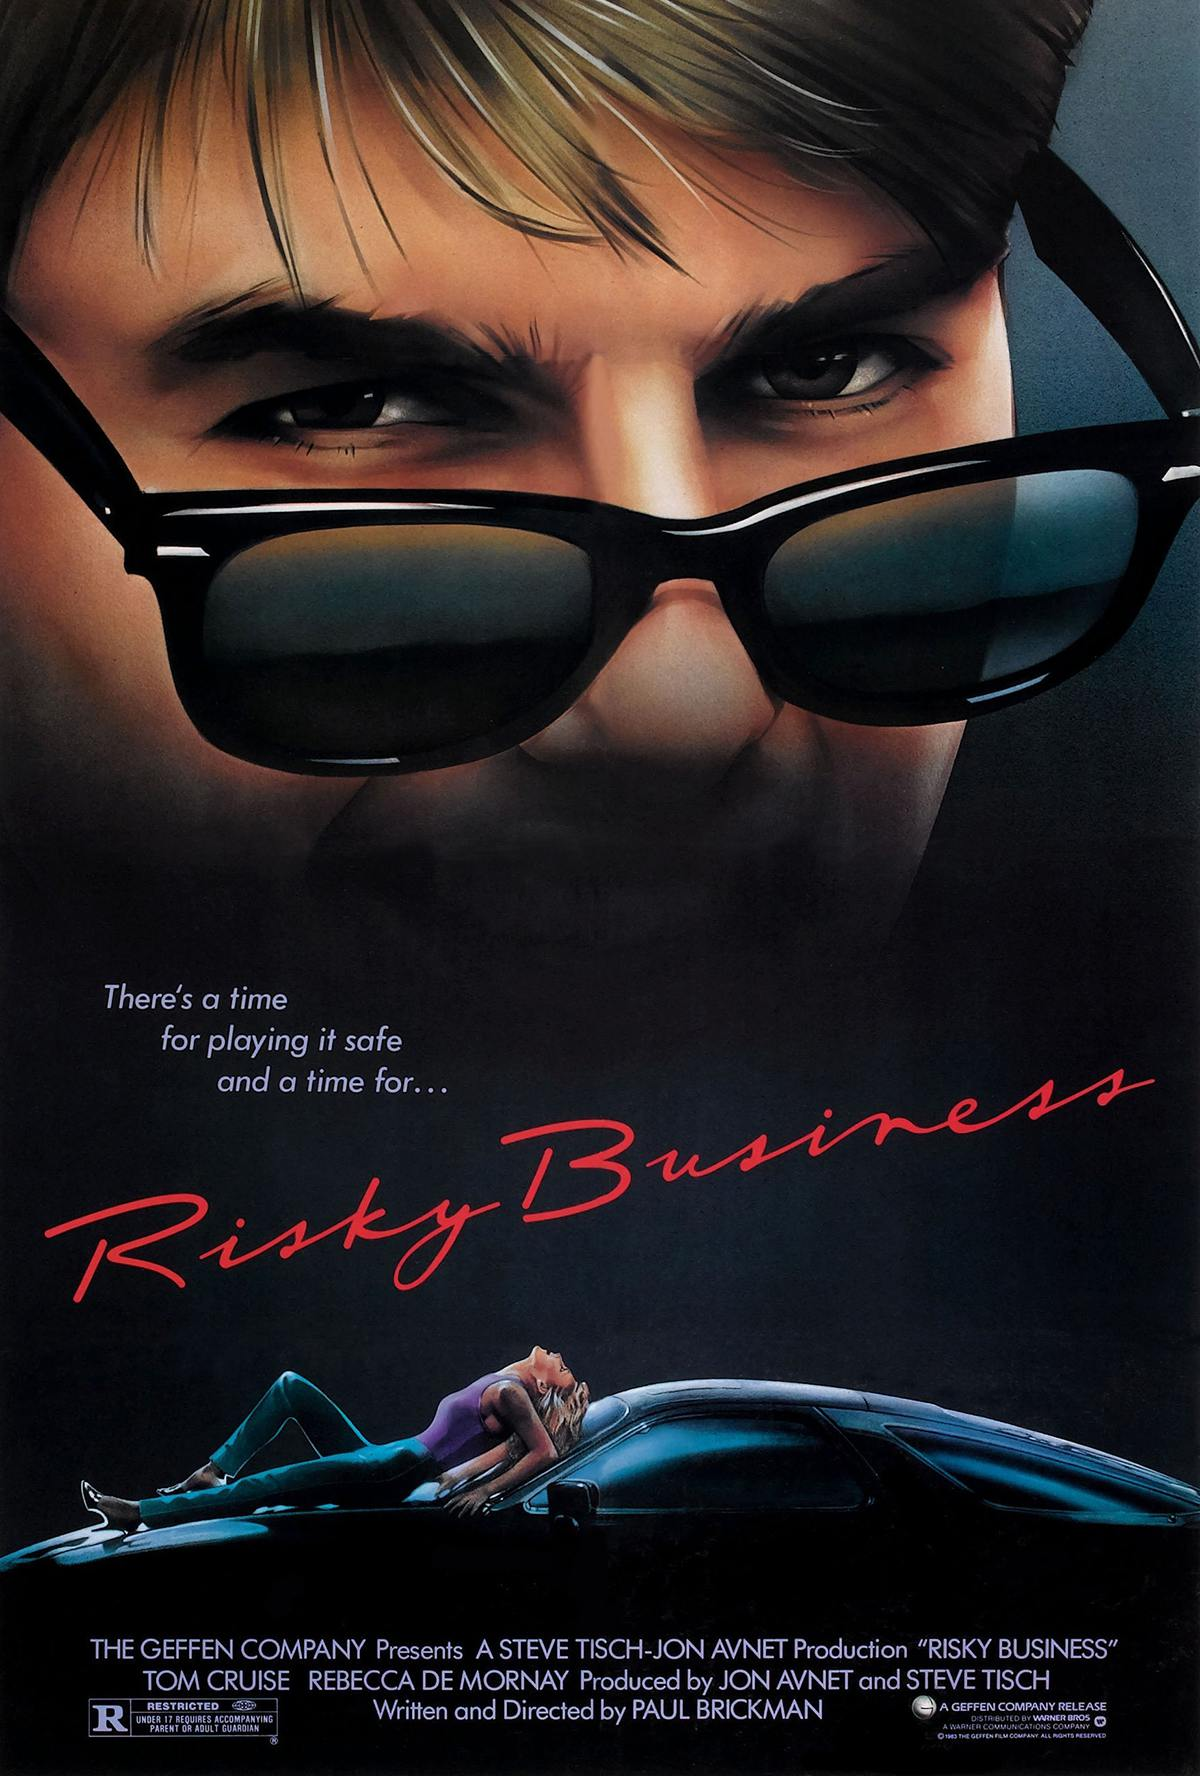 risky business movie review Risky business: every tom cruise film, ranked - updated from top guns to last samurais, impossible missions to mummy hunts - we rate the movies of america's reigning movie star from worst to best.